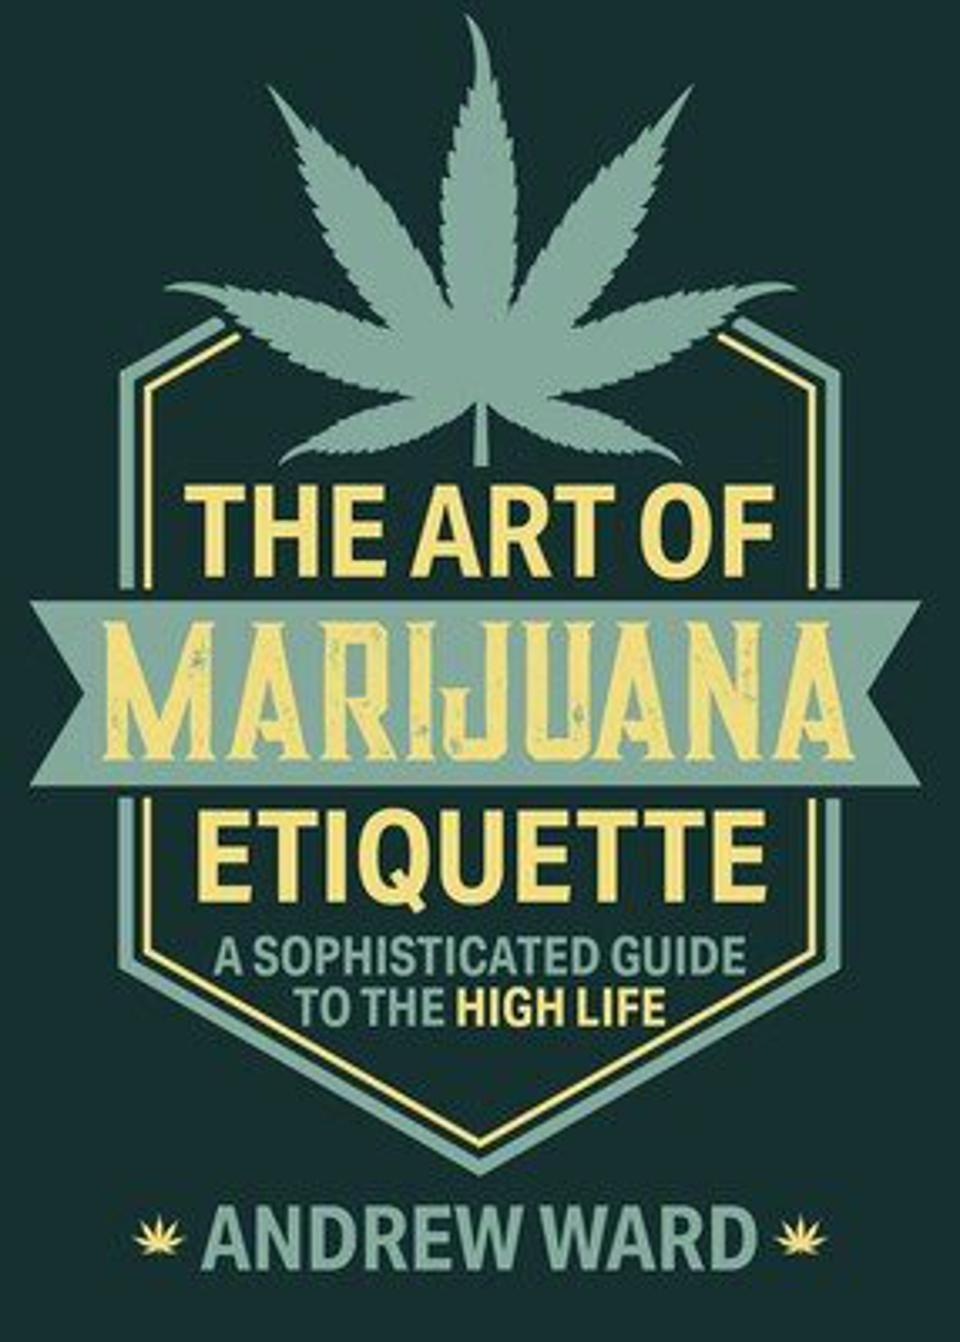 The cover of the new book The Art of Marijuana Etiquette